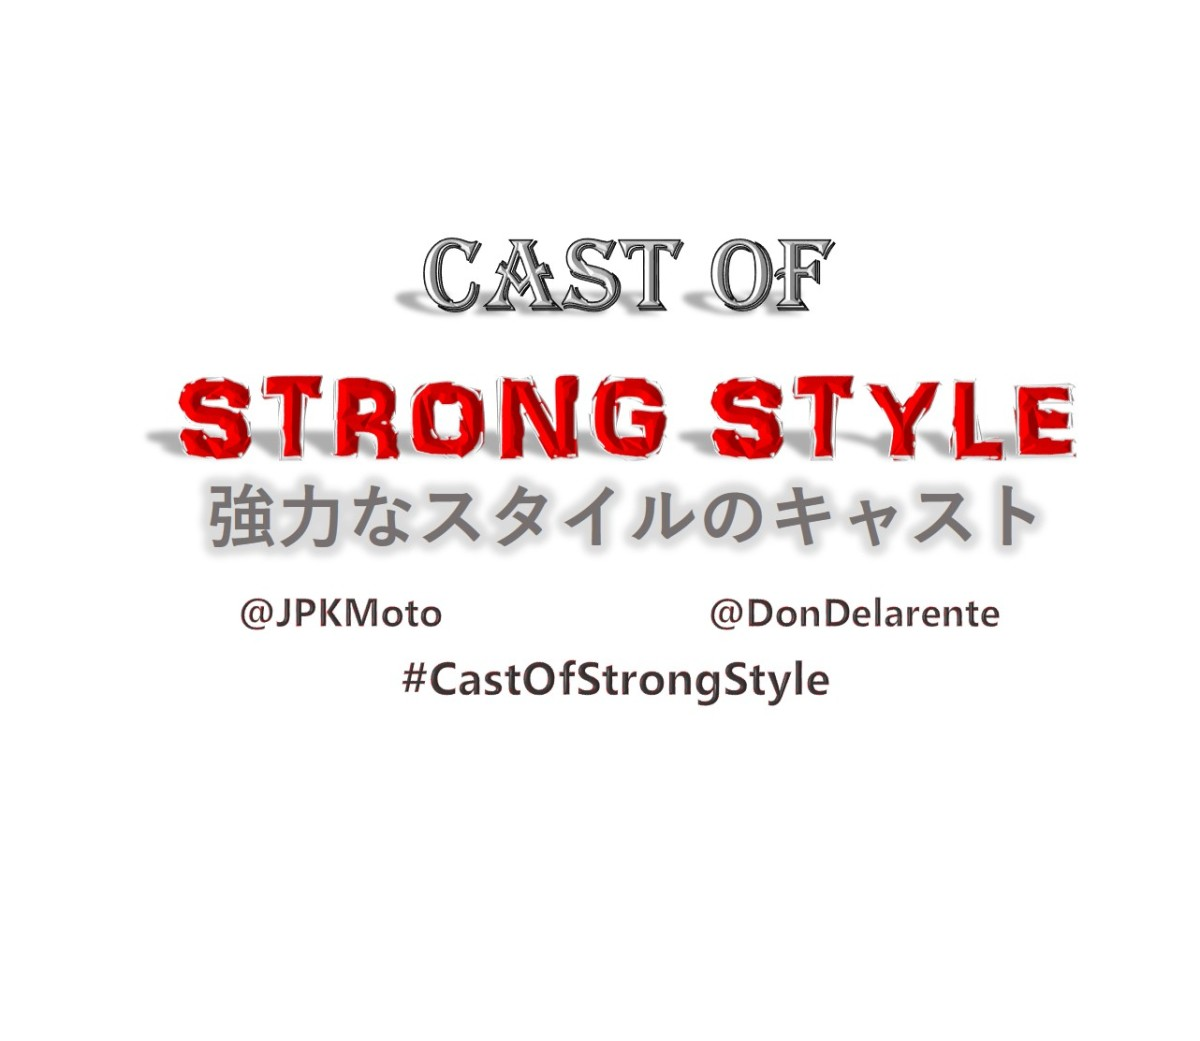 Cast of Strong Style: Power Struggle Review